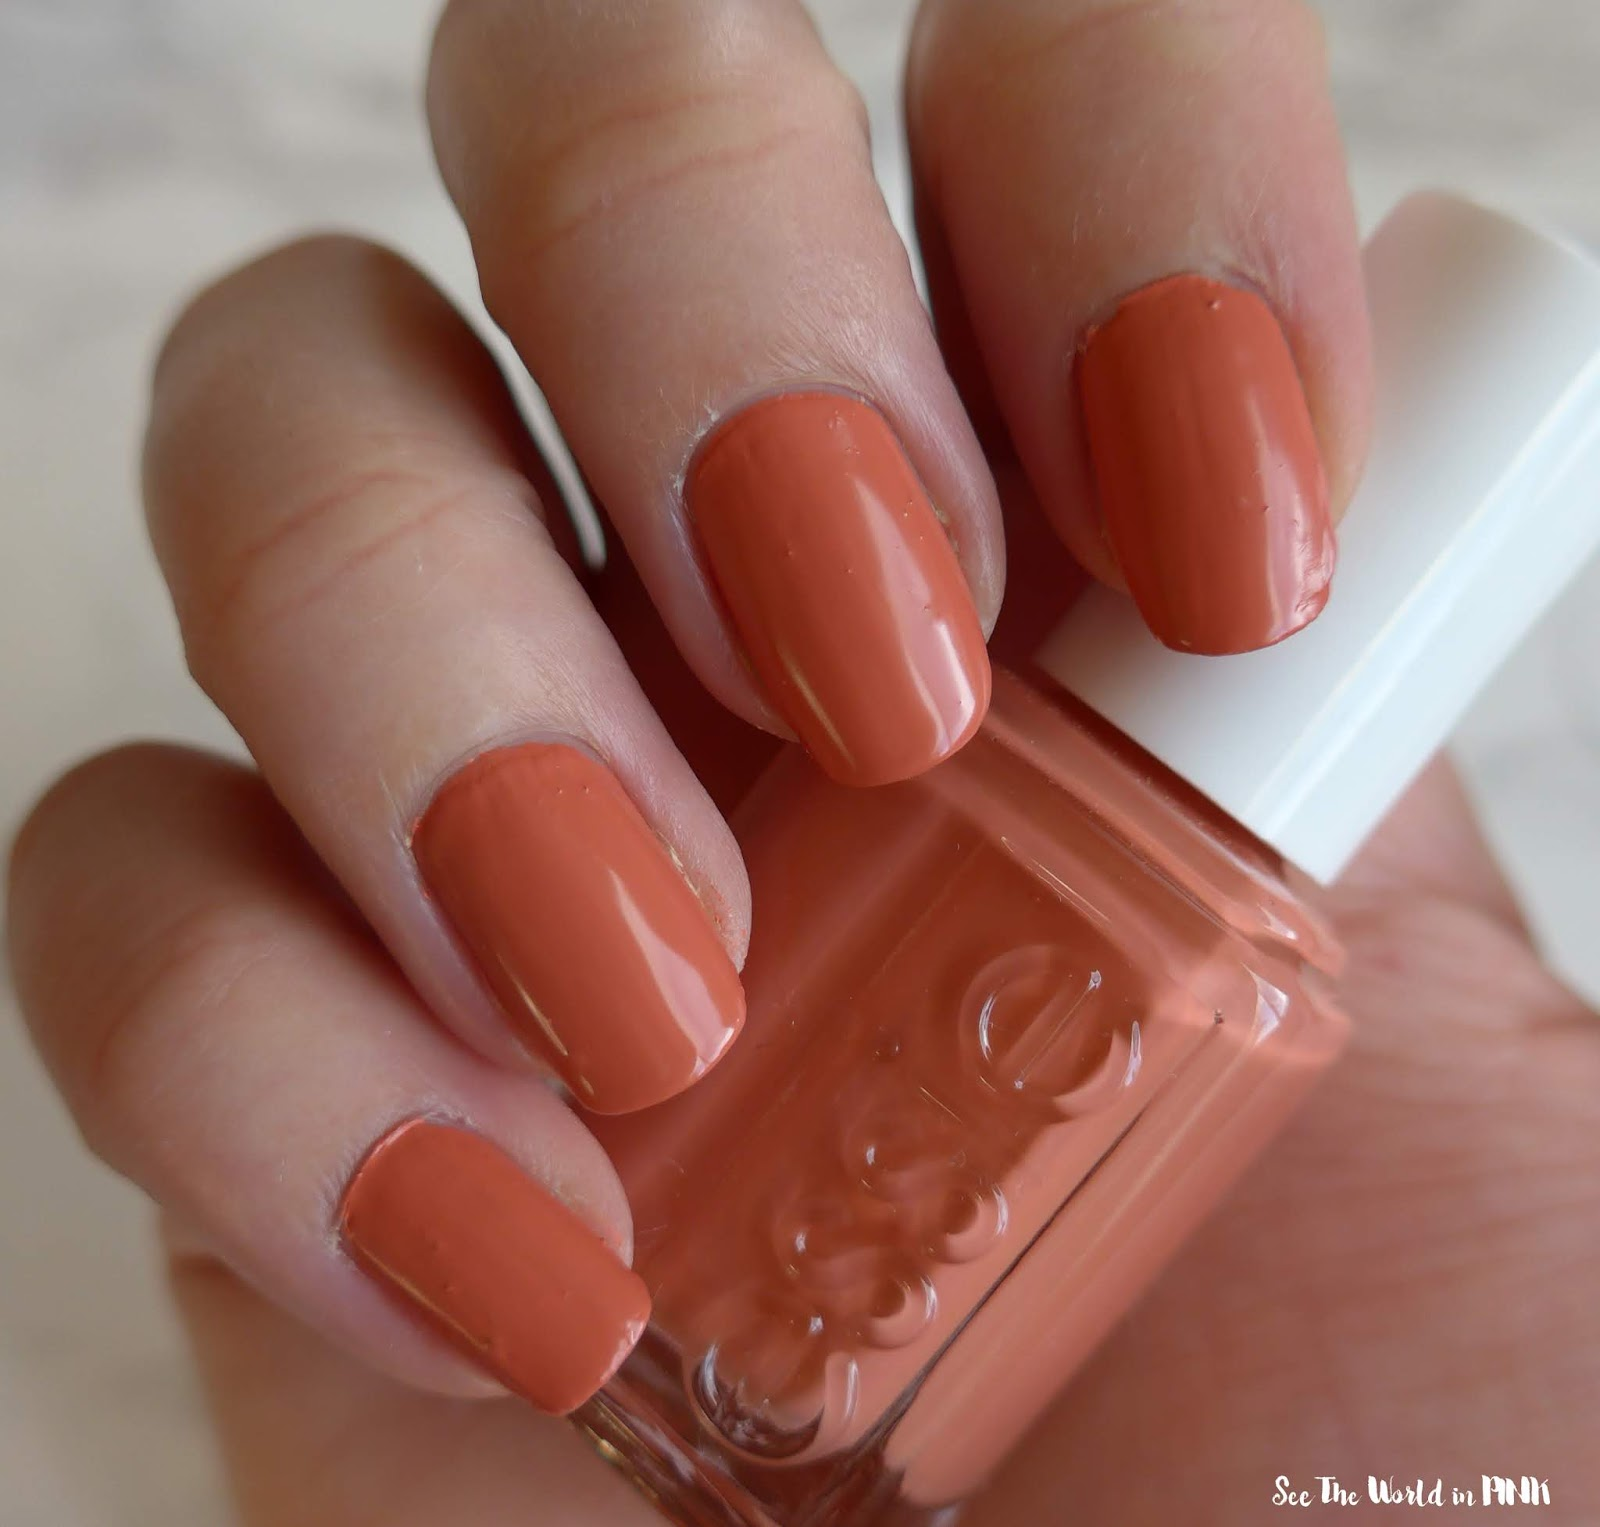 Manicure Monday - Essie Summer 2019 Collection Swatches